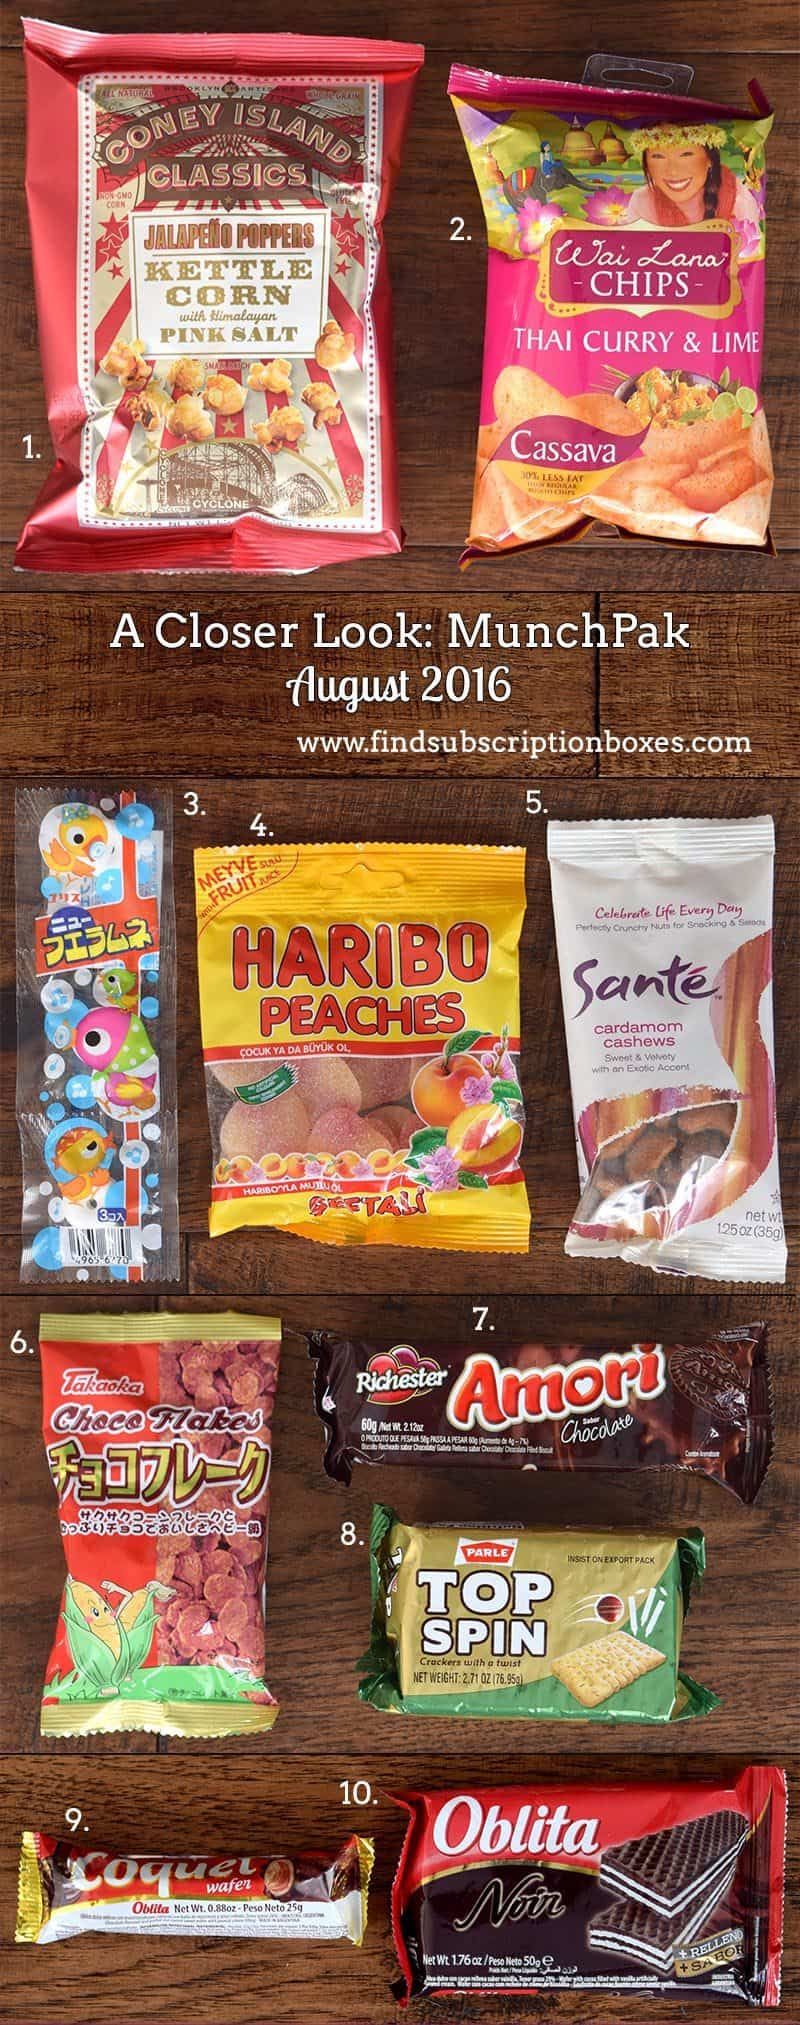 August 2016 MunchPak Review - Inside the Box